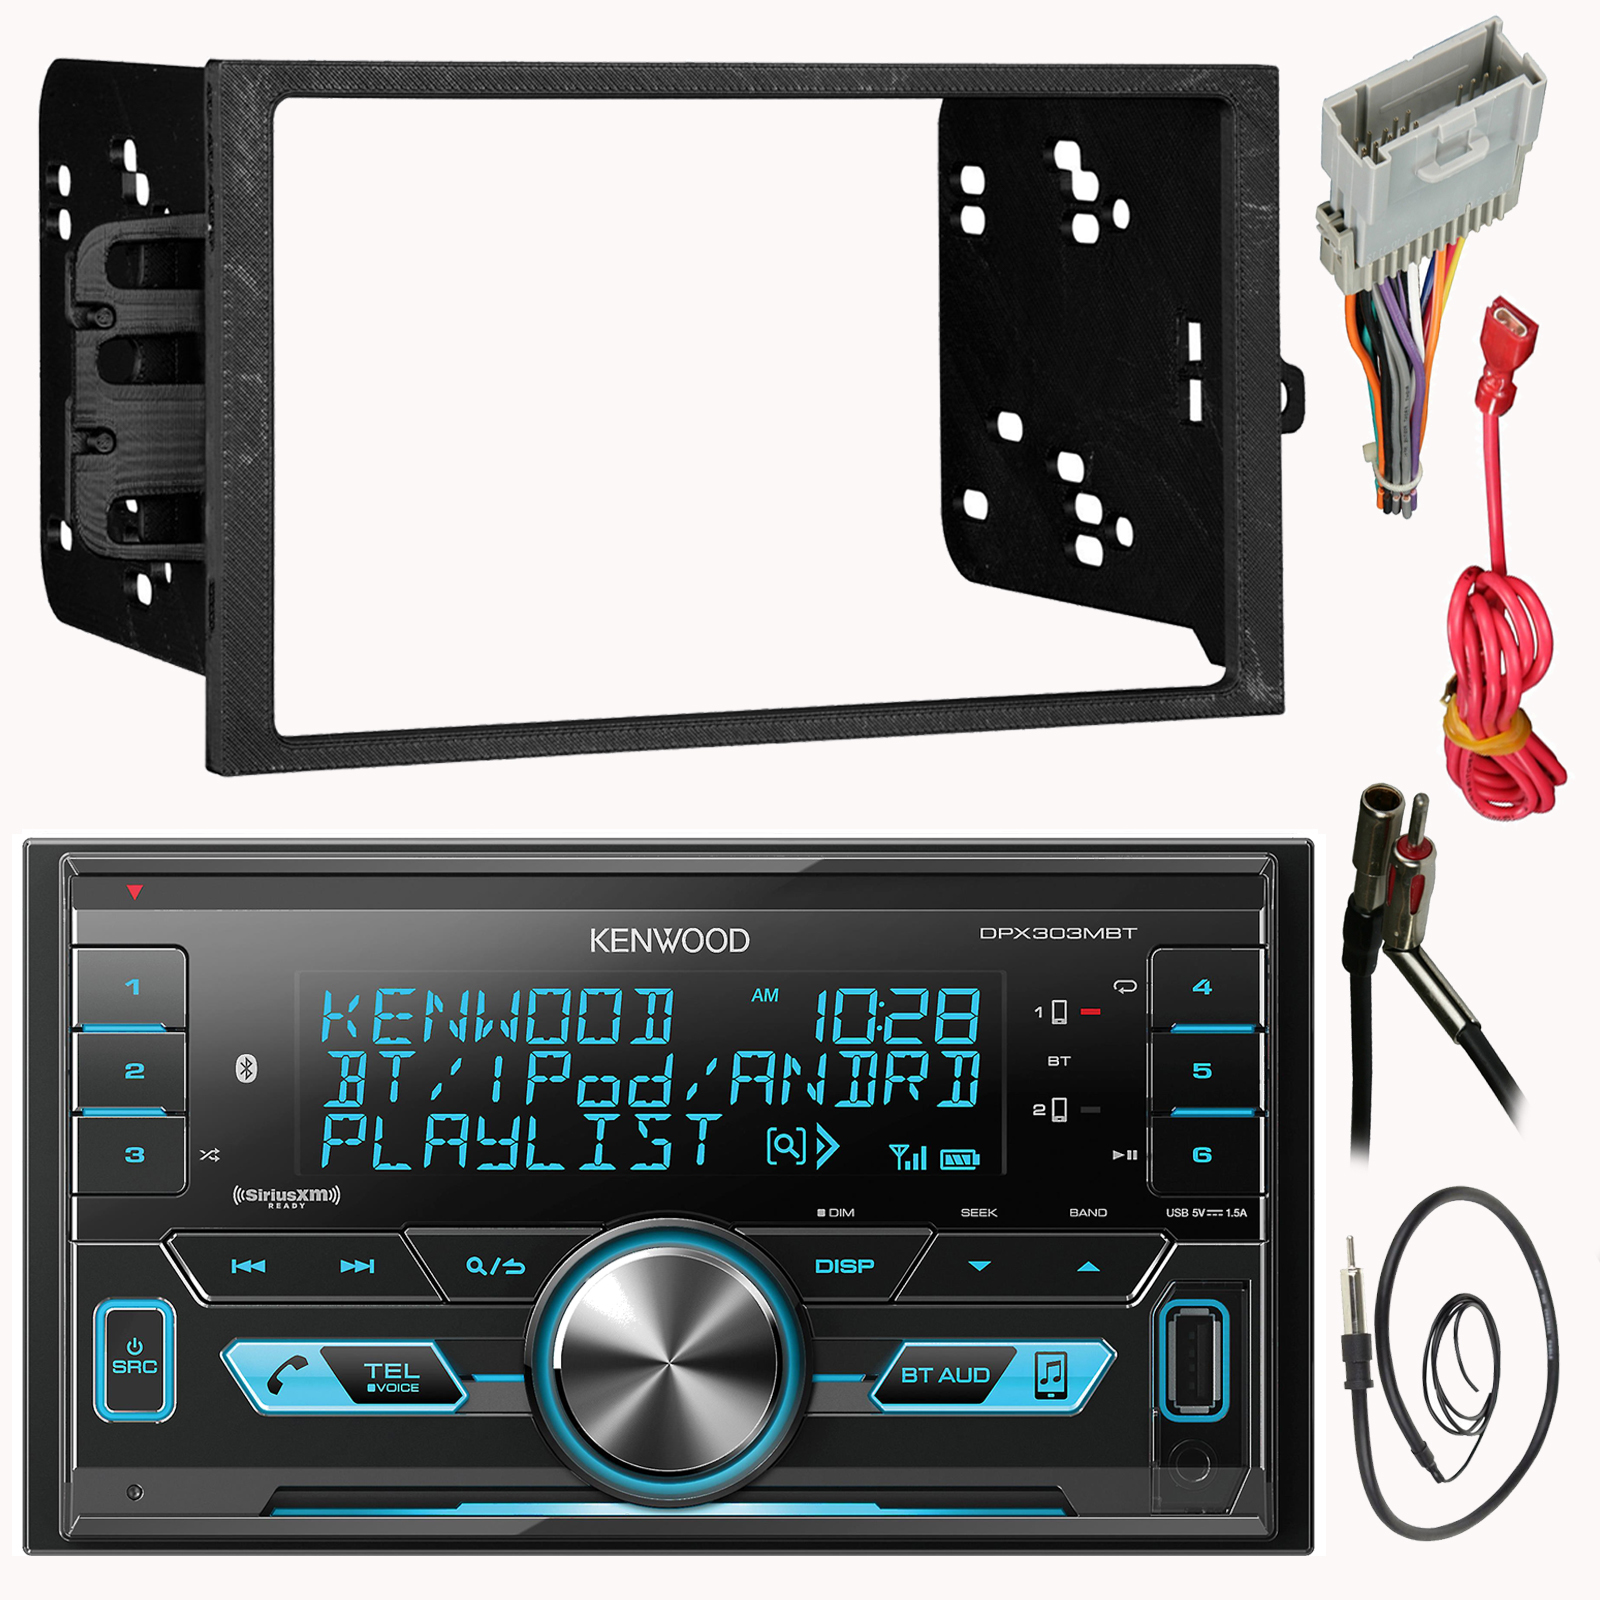 Kenwood Double Din Stereo Wiring Diagram Wiring Diagram Data Val